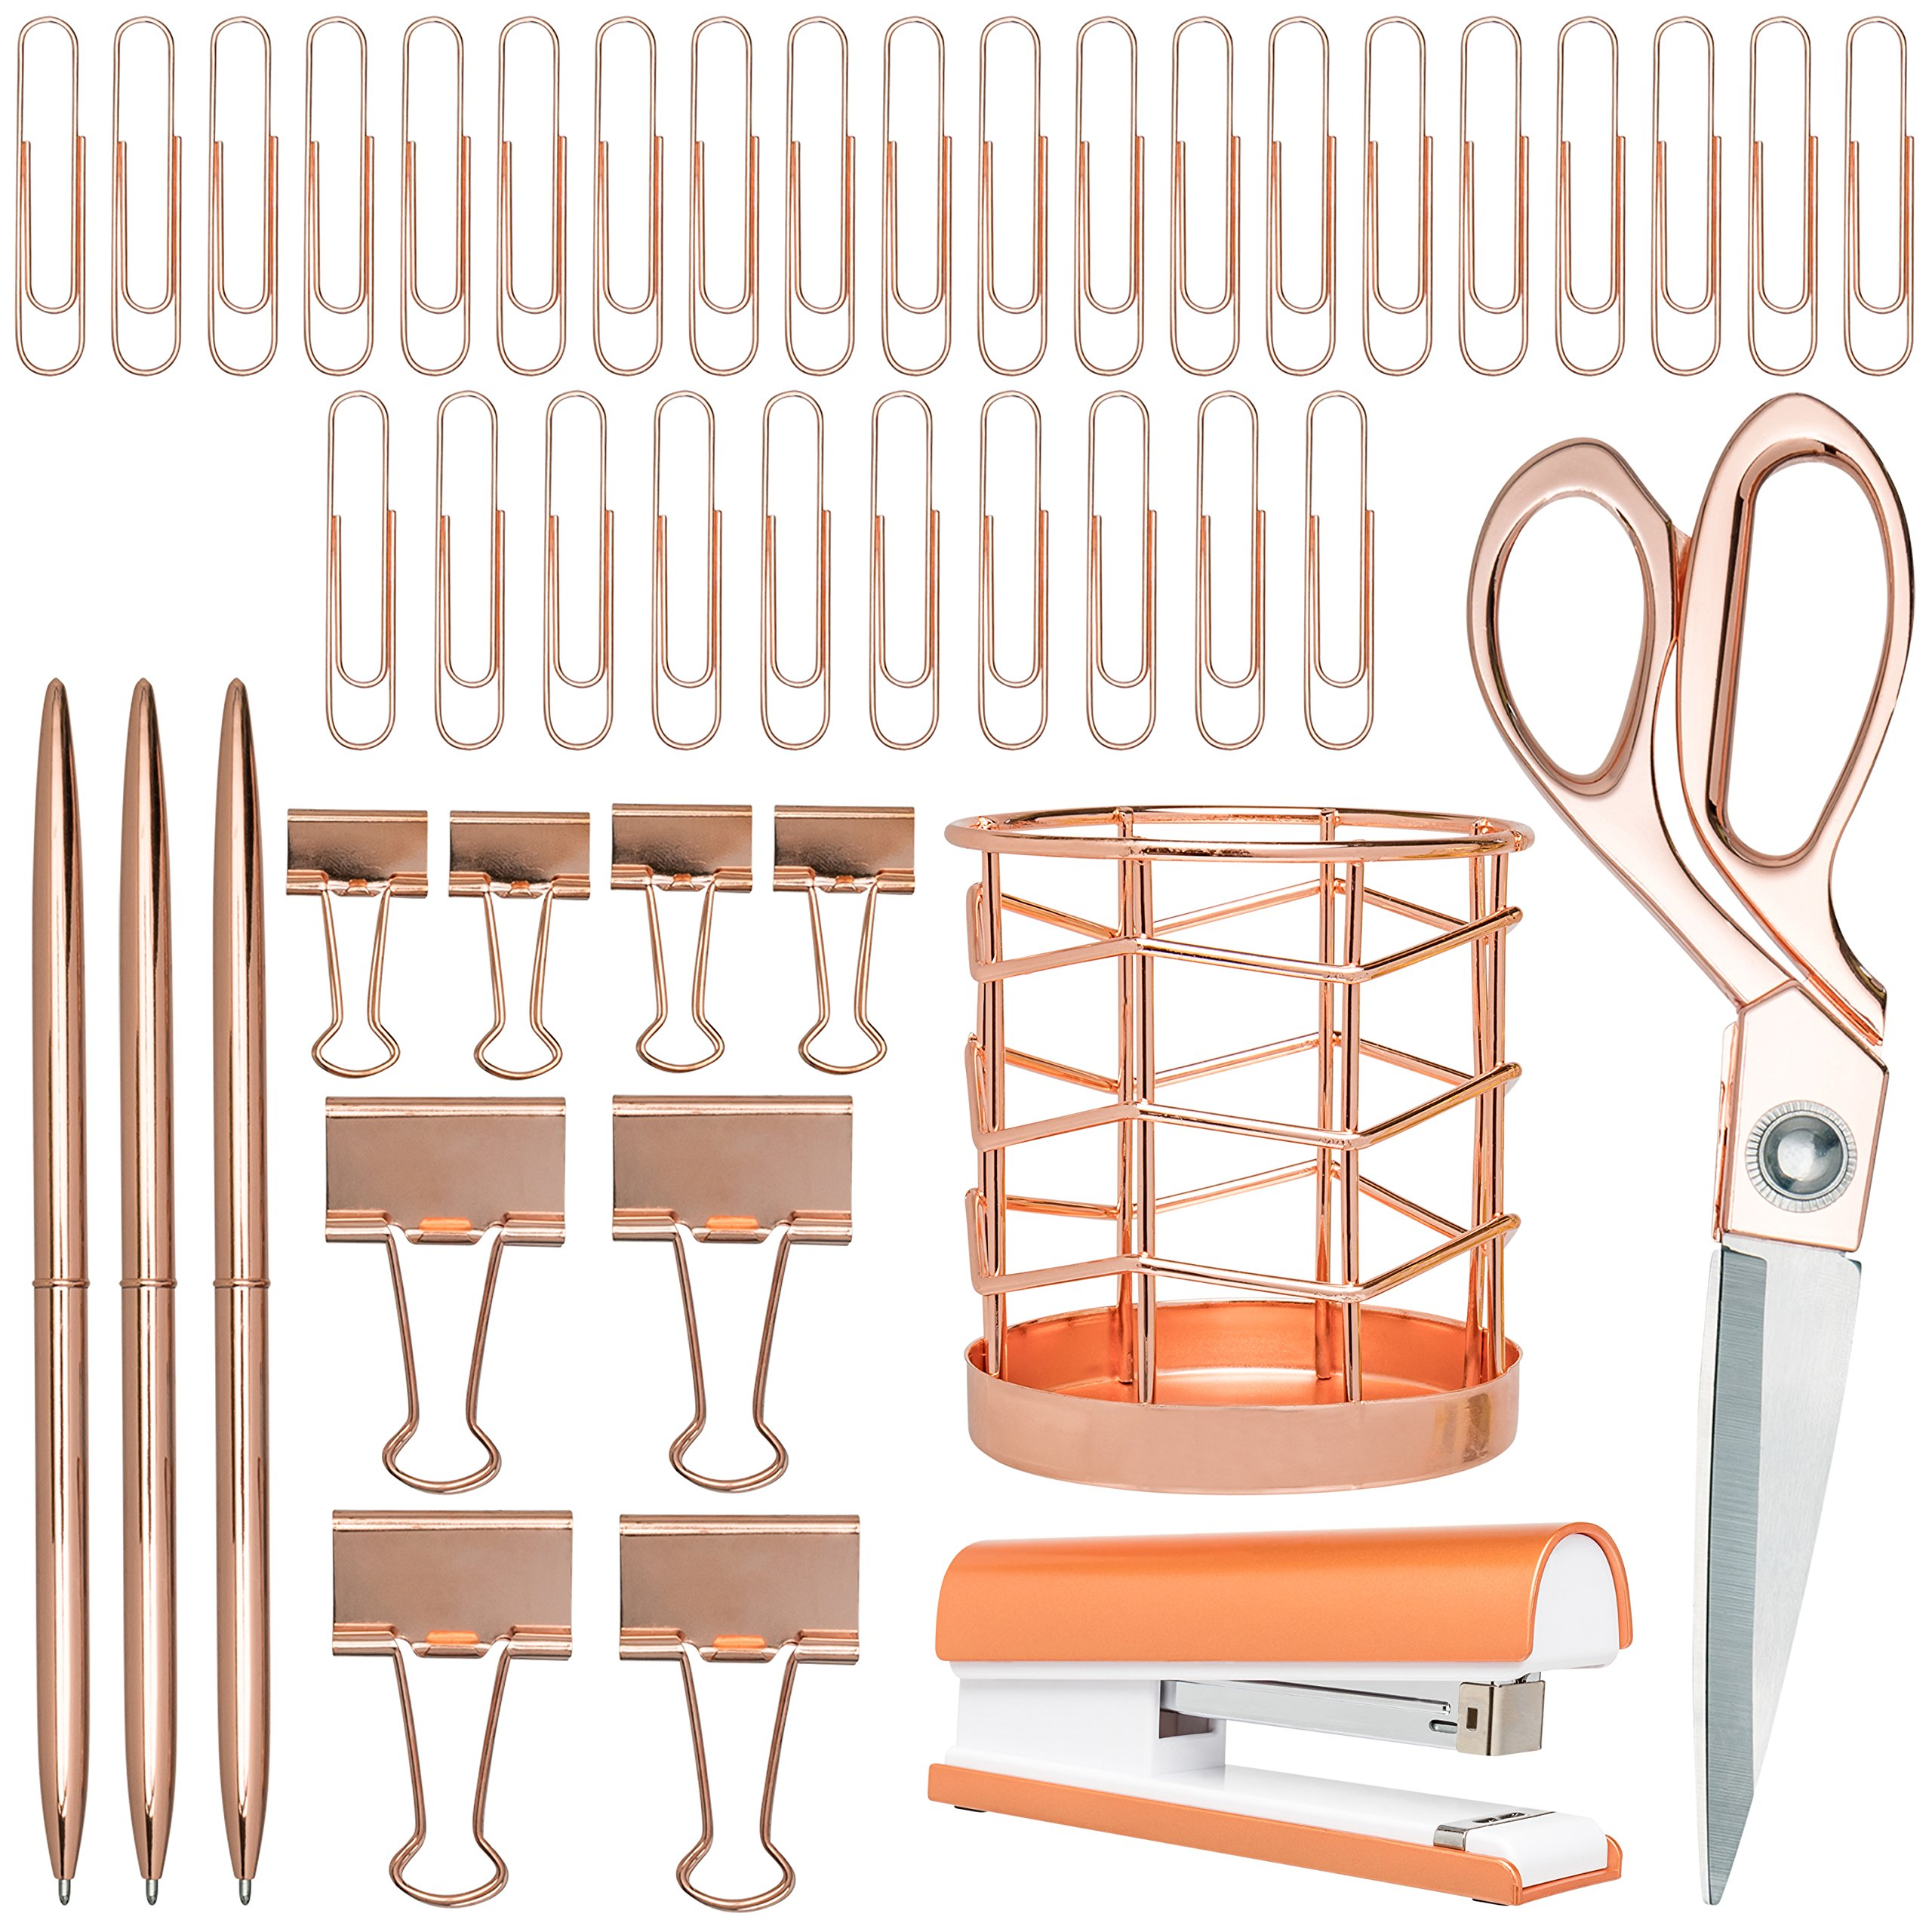 Rose Gold Desk Accessories | 7 Desktop Essentials (44 Items Total) | Office Supply Set & Organizer in Rose Gold Décor by Greenline Goods (Image #8)